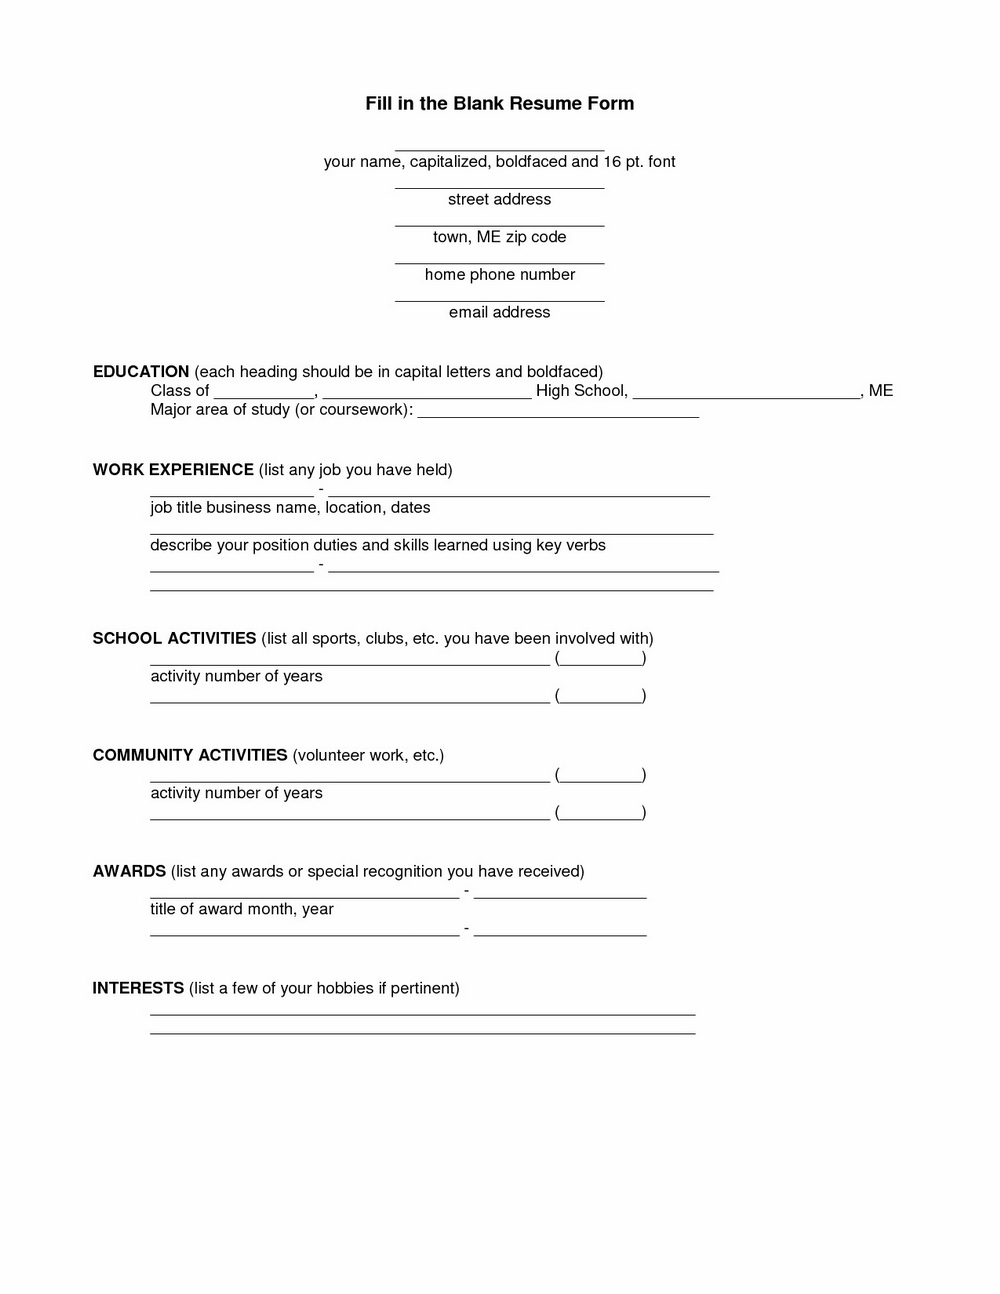 Blank Resume Format Free Download